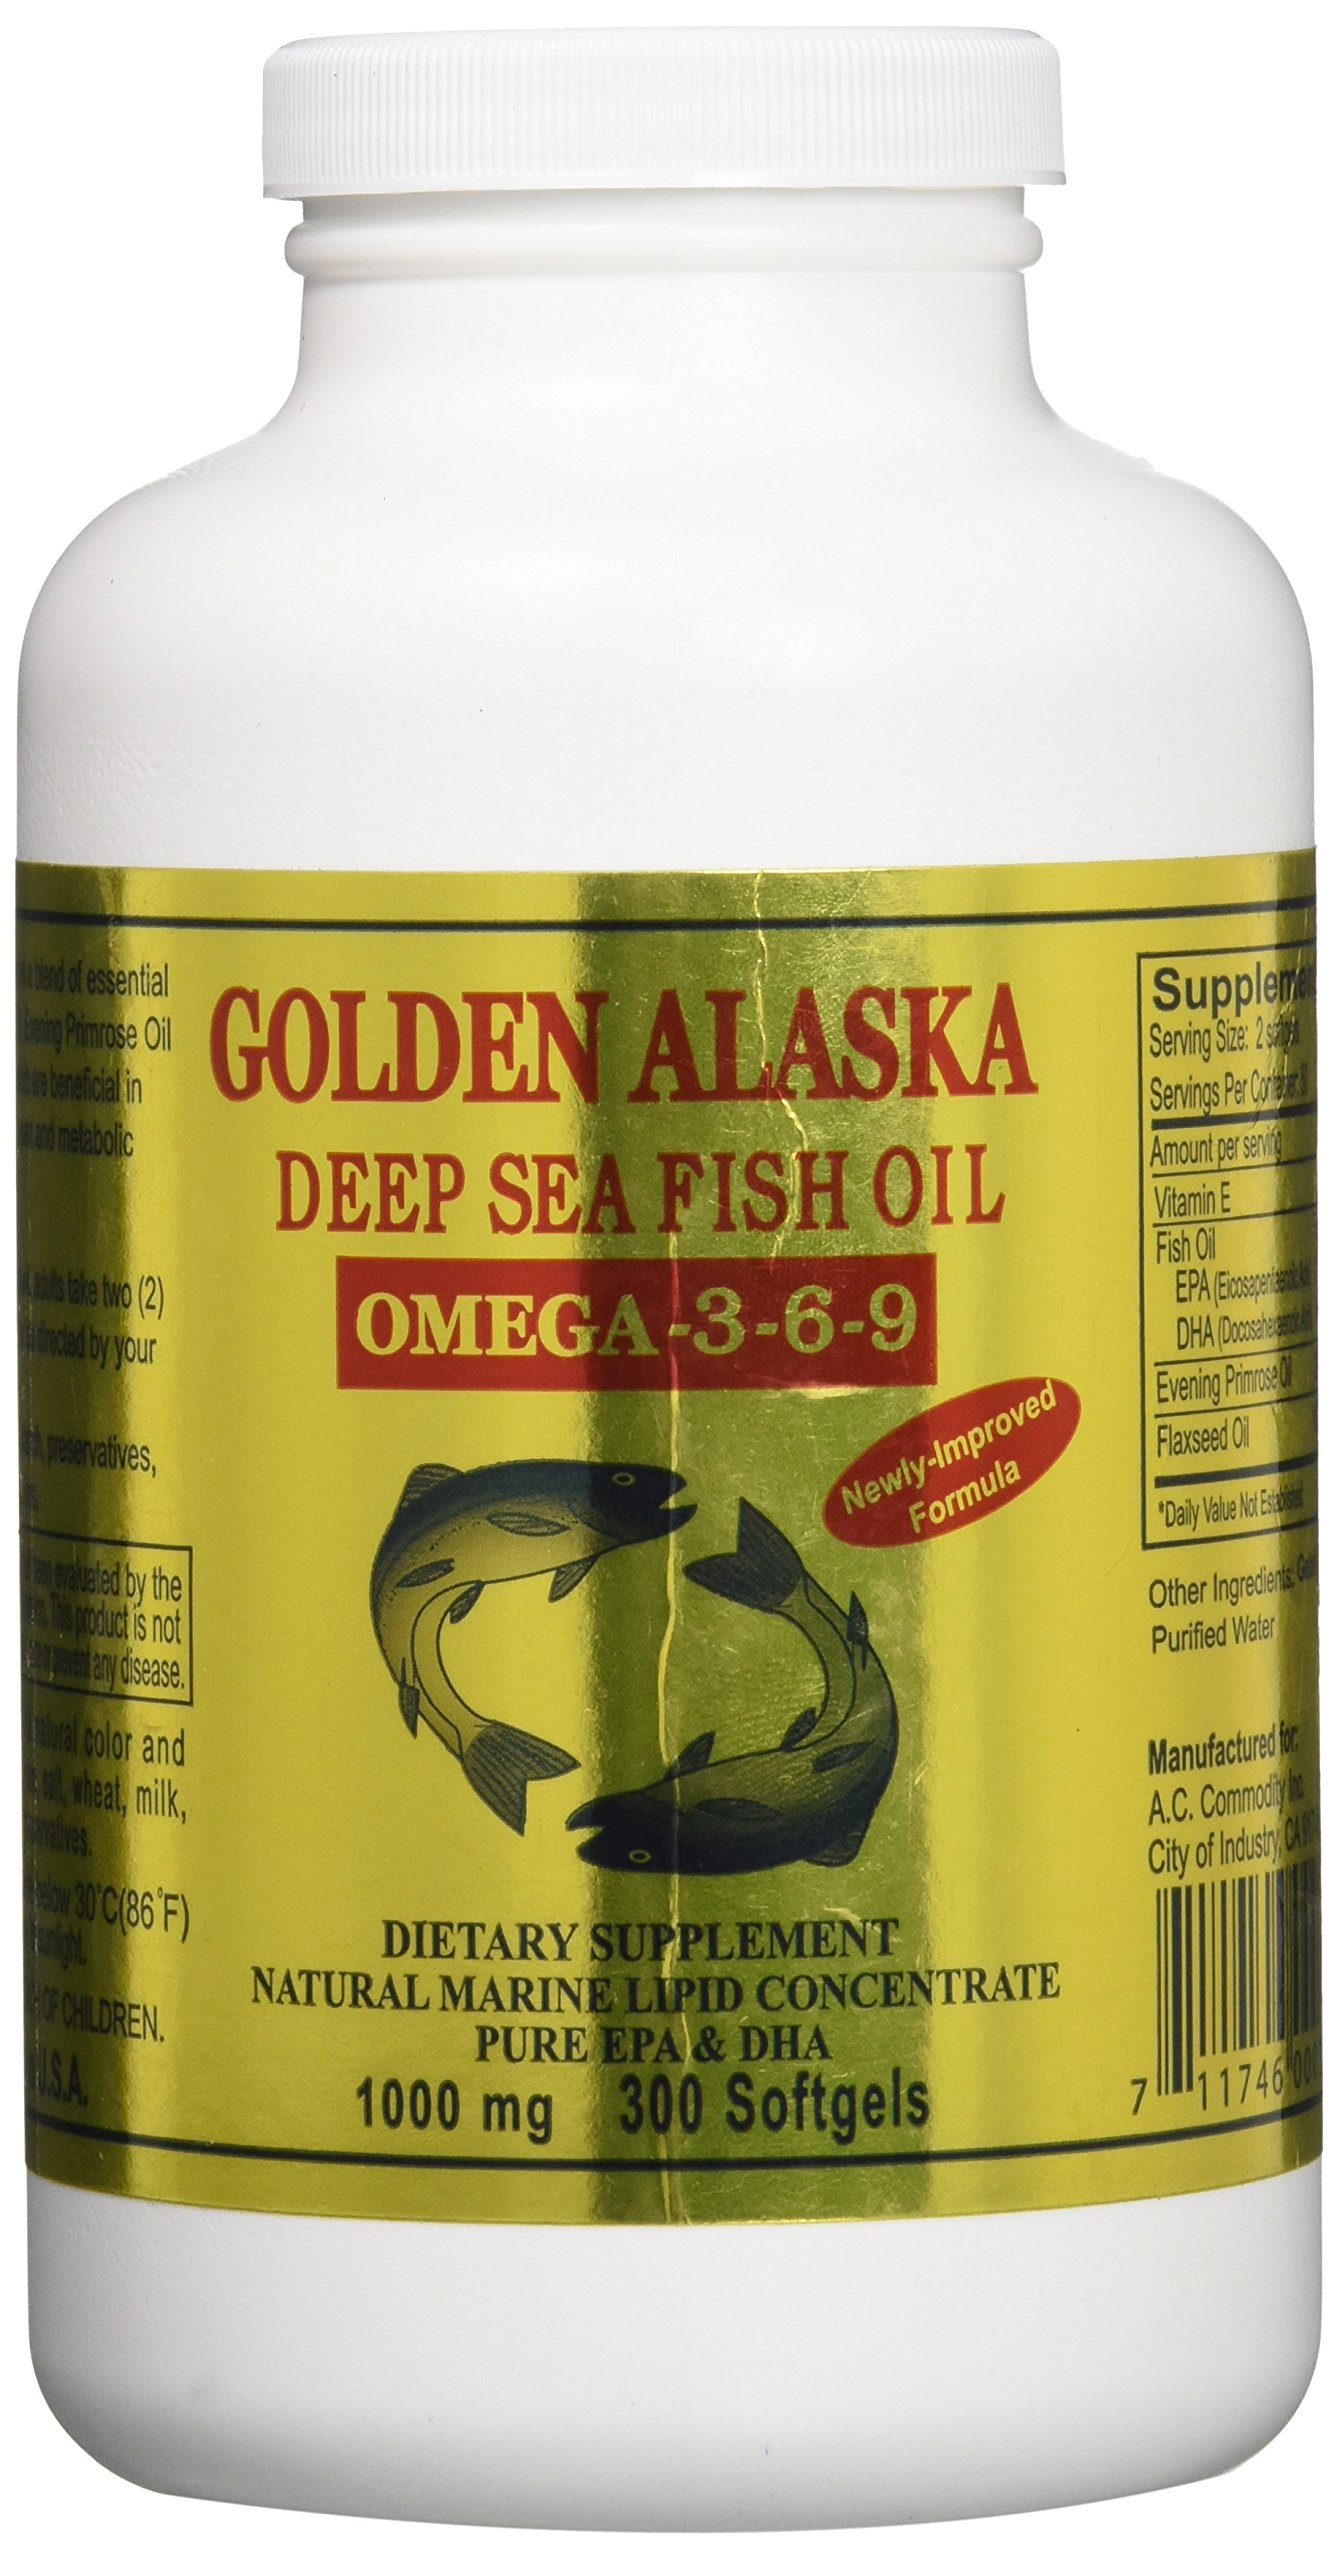 Golden alaska deep sea omega 3 6 9 fish oil for Alaska deep sea fish oil